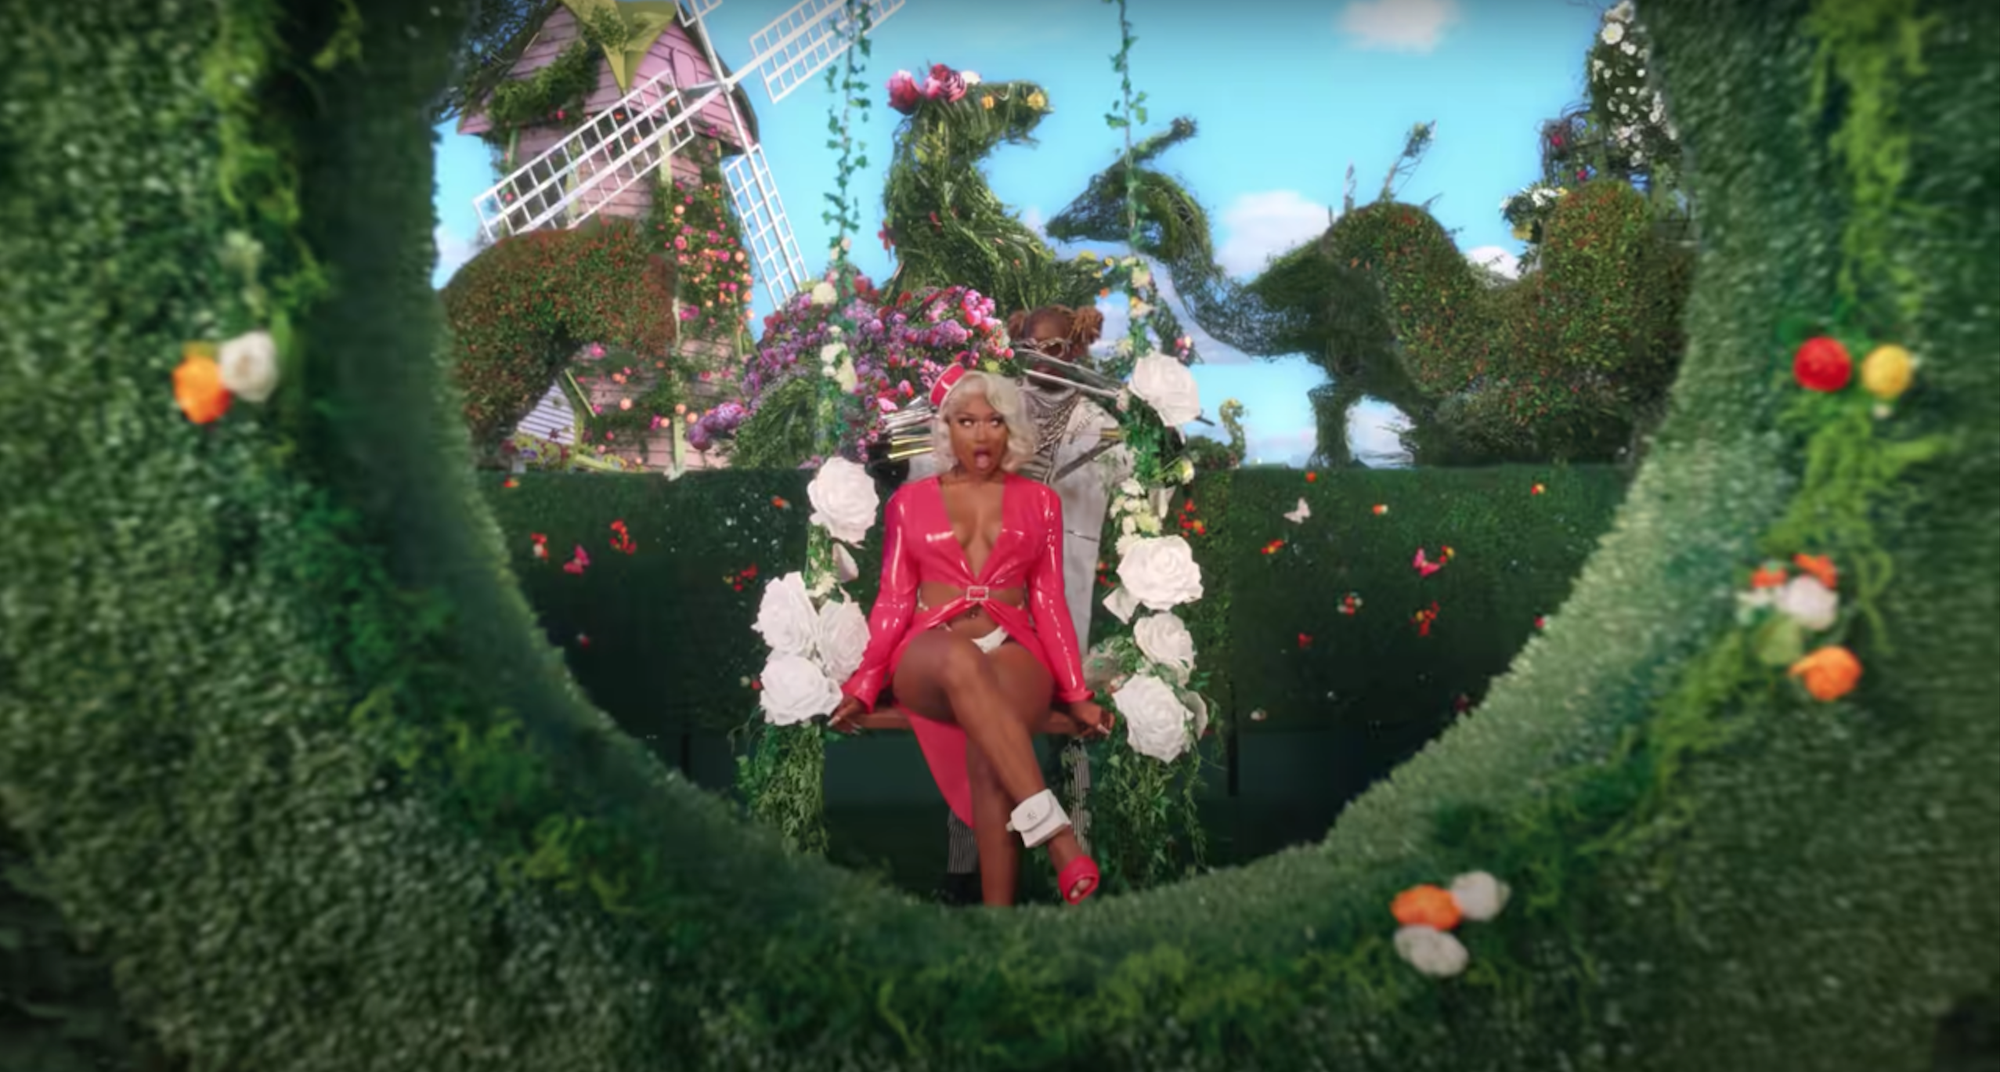 Music Video Breakdown: 'Don't Stop' by Megan Thee Stallion feat. Young Thug   Arts   The Harvard Crimson